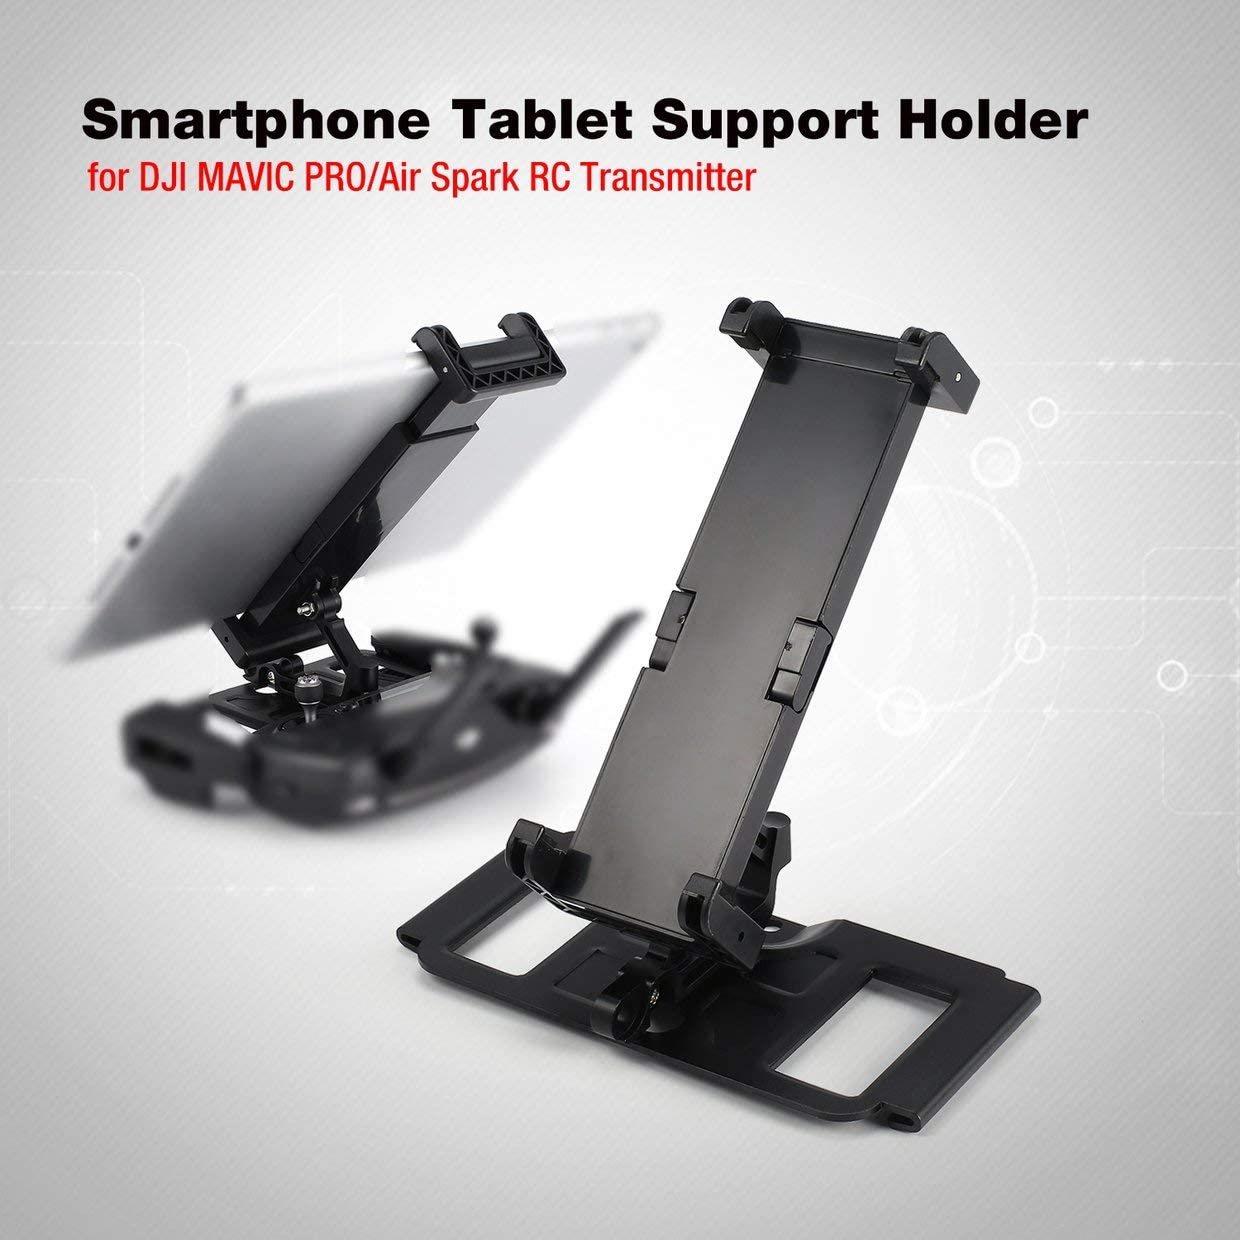 MXECO Smartphone Tablet Support Holder Adapter for dji Mavic Pro/Air Spark RC Drone Quadcopter Transmitter for 4-12in Monitor Pad: Amazon.es: Juguetes y juegos